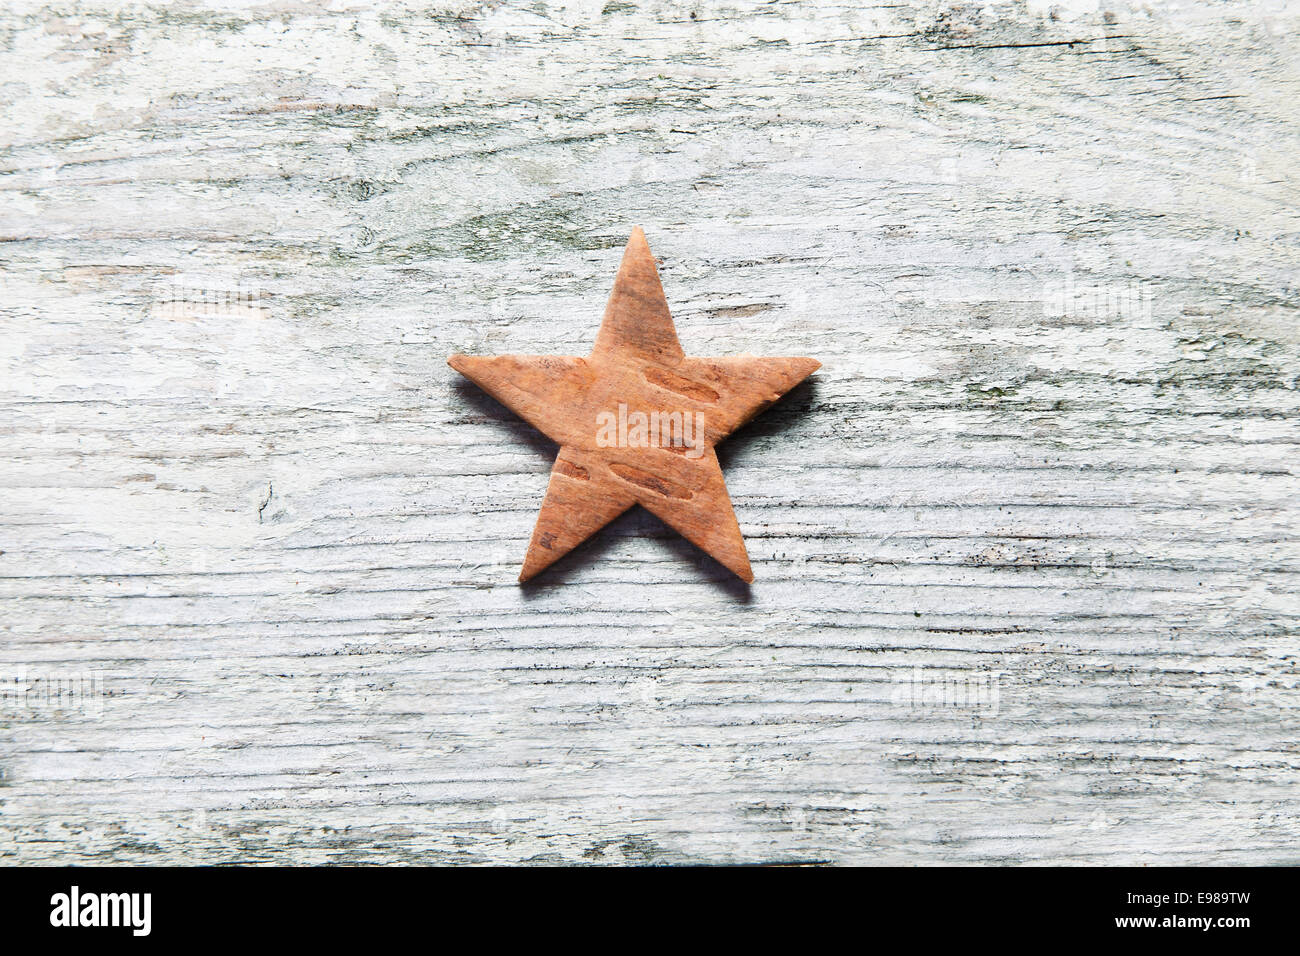 Rustic Christmas star centred on grungy old white weathered wooden boards with grain texture and copyspace - Stock Image